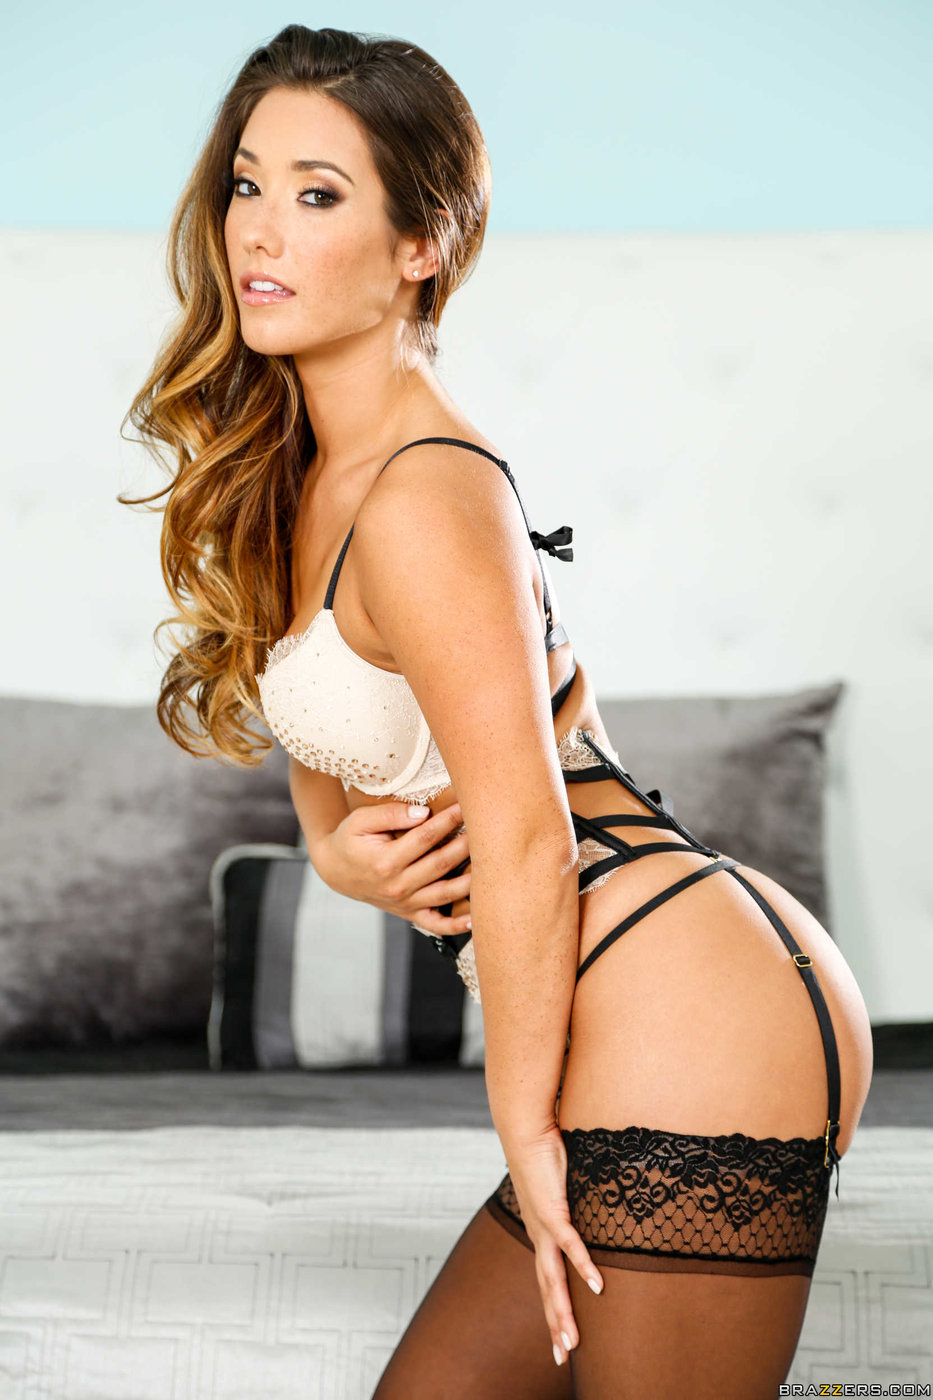 Stunning brunette Eva Lovia plays with her hot tanned boobies  1589934